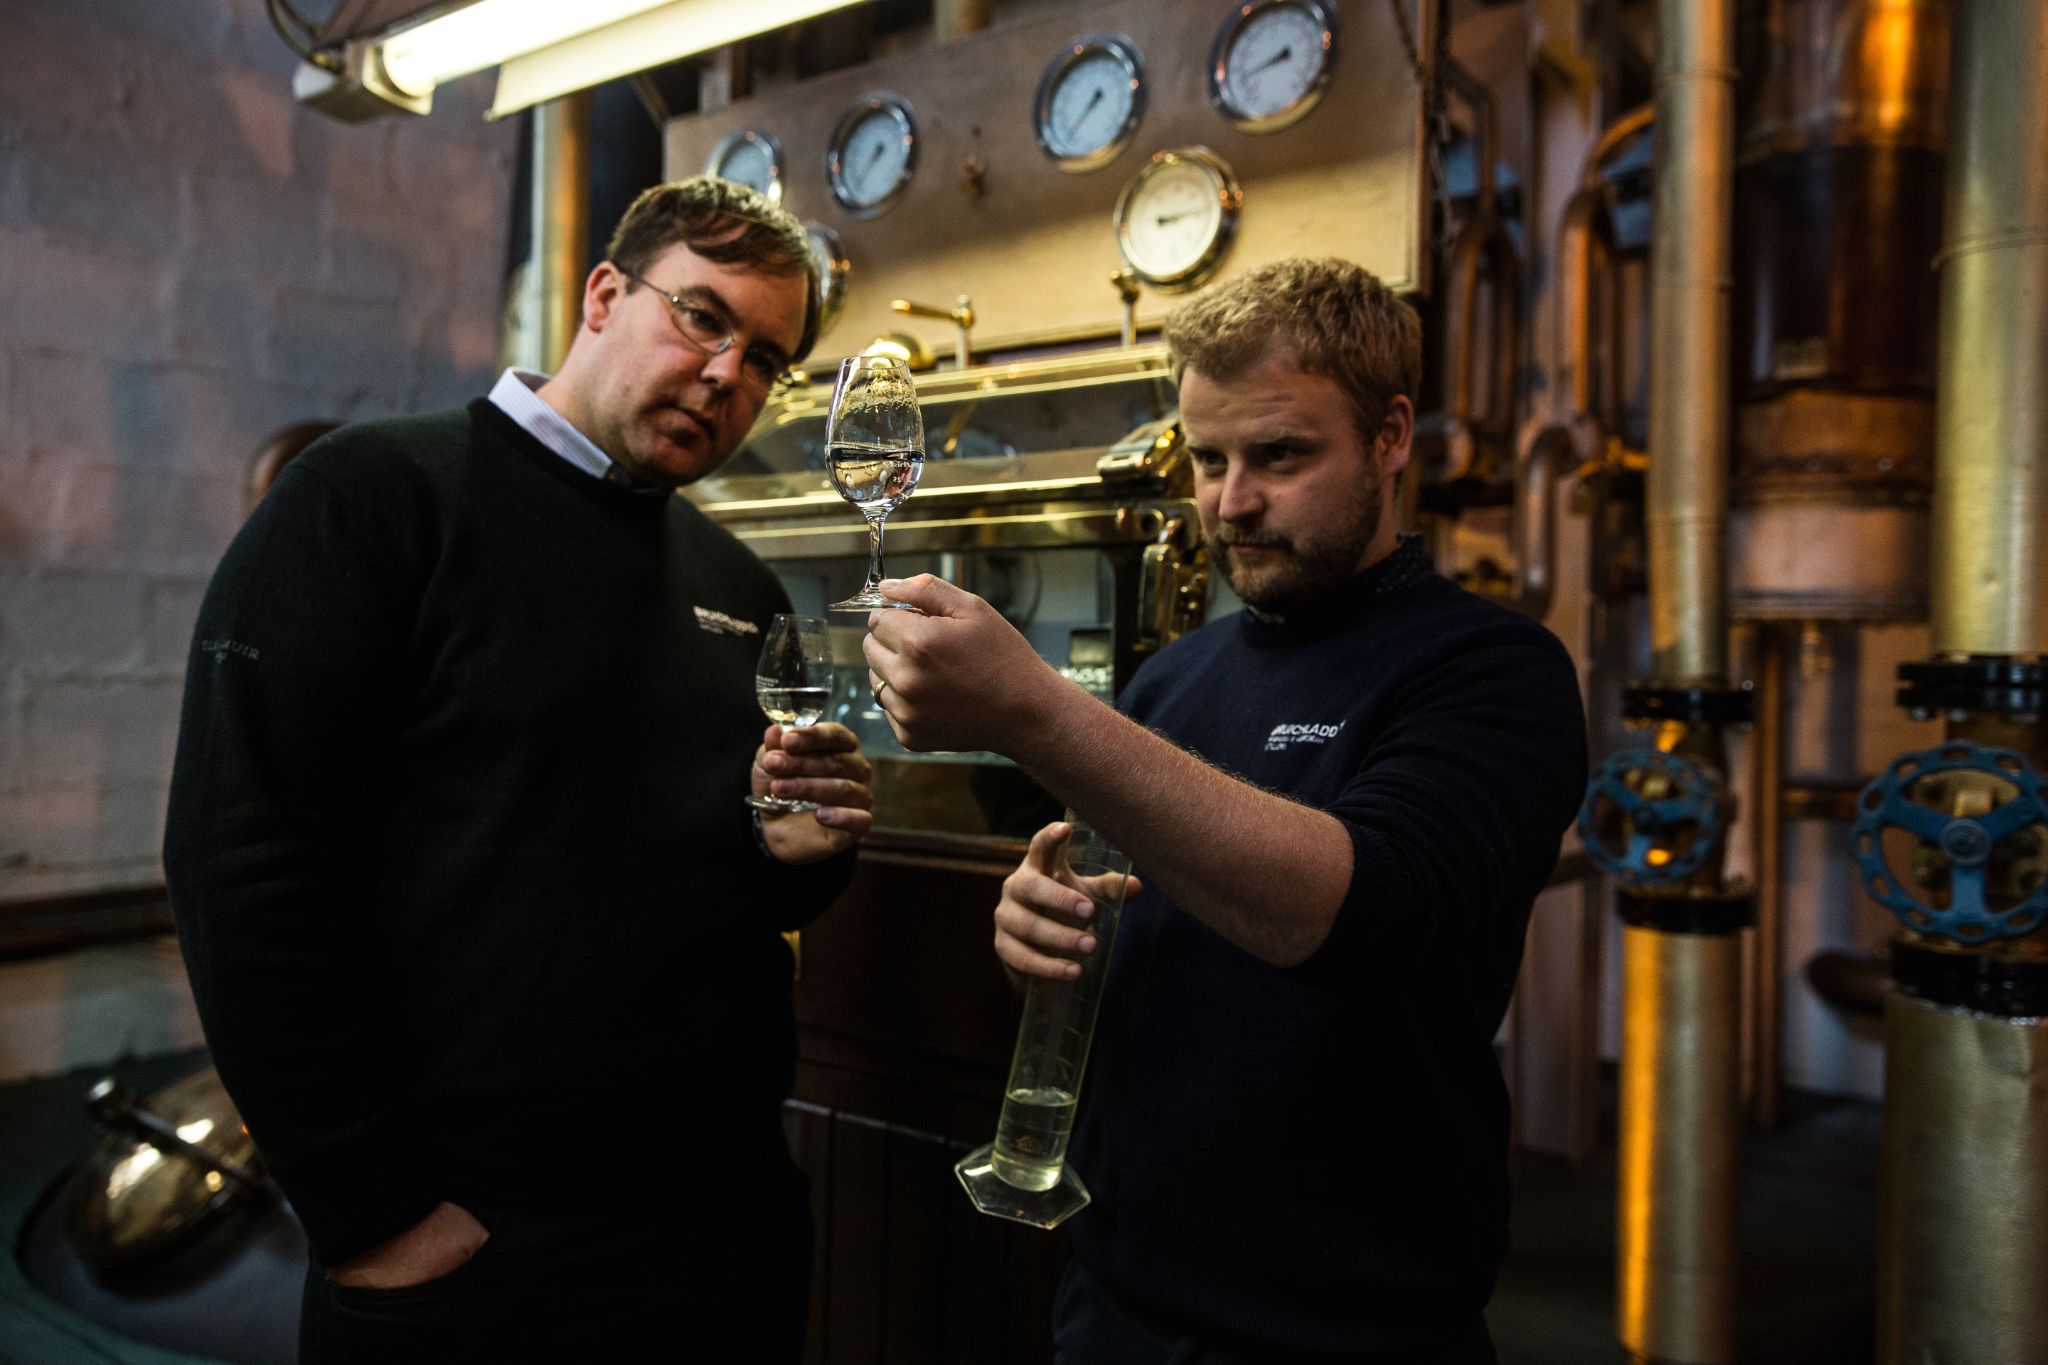 fuelcellsworks, Hydrogen Given the Green Light At Bruichladdich as Leading Islay Distillery Targets Net Zero by 2025